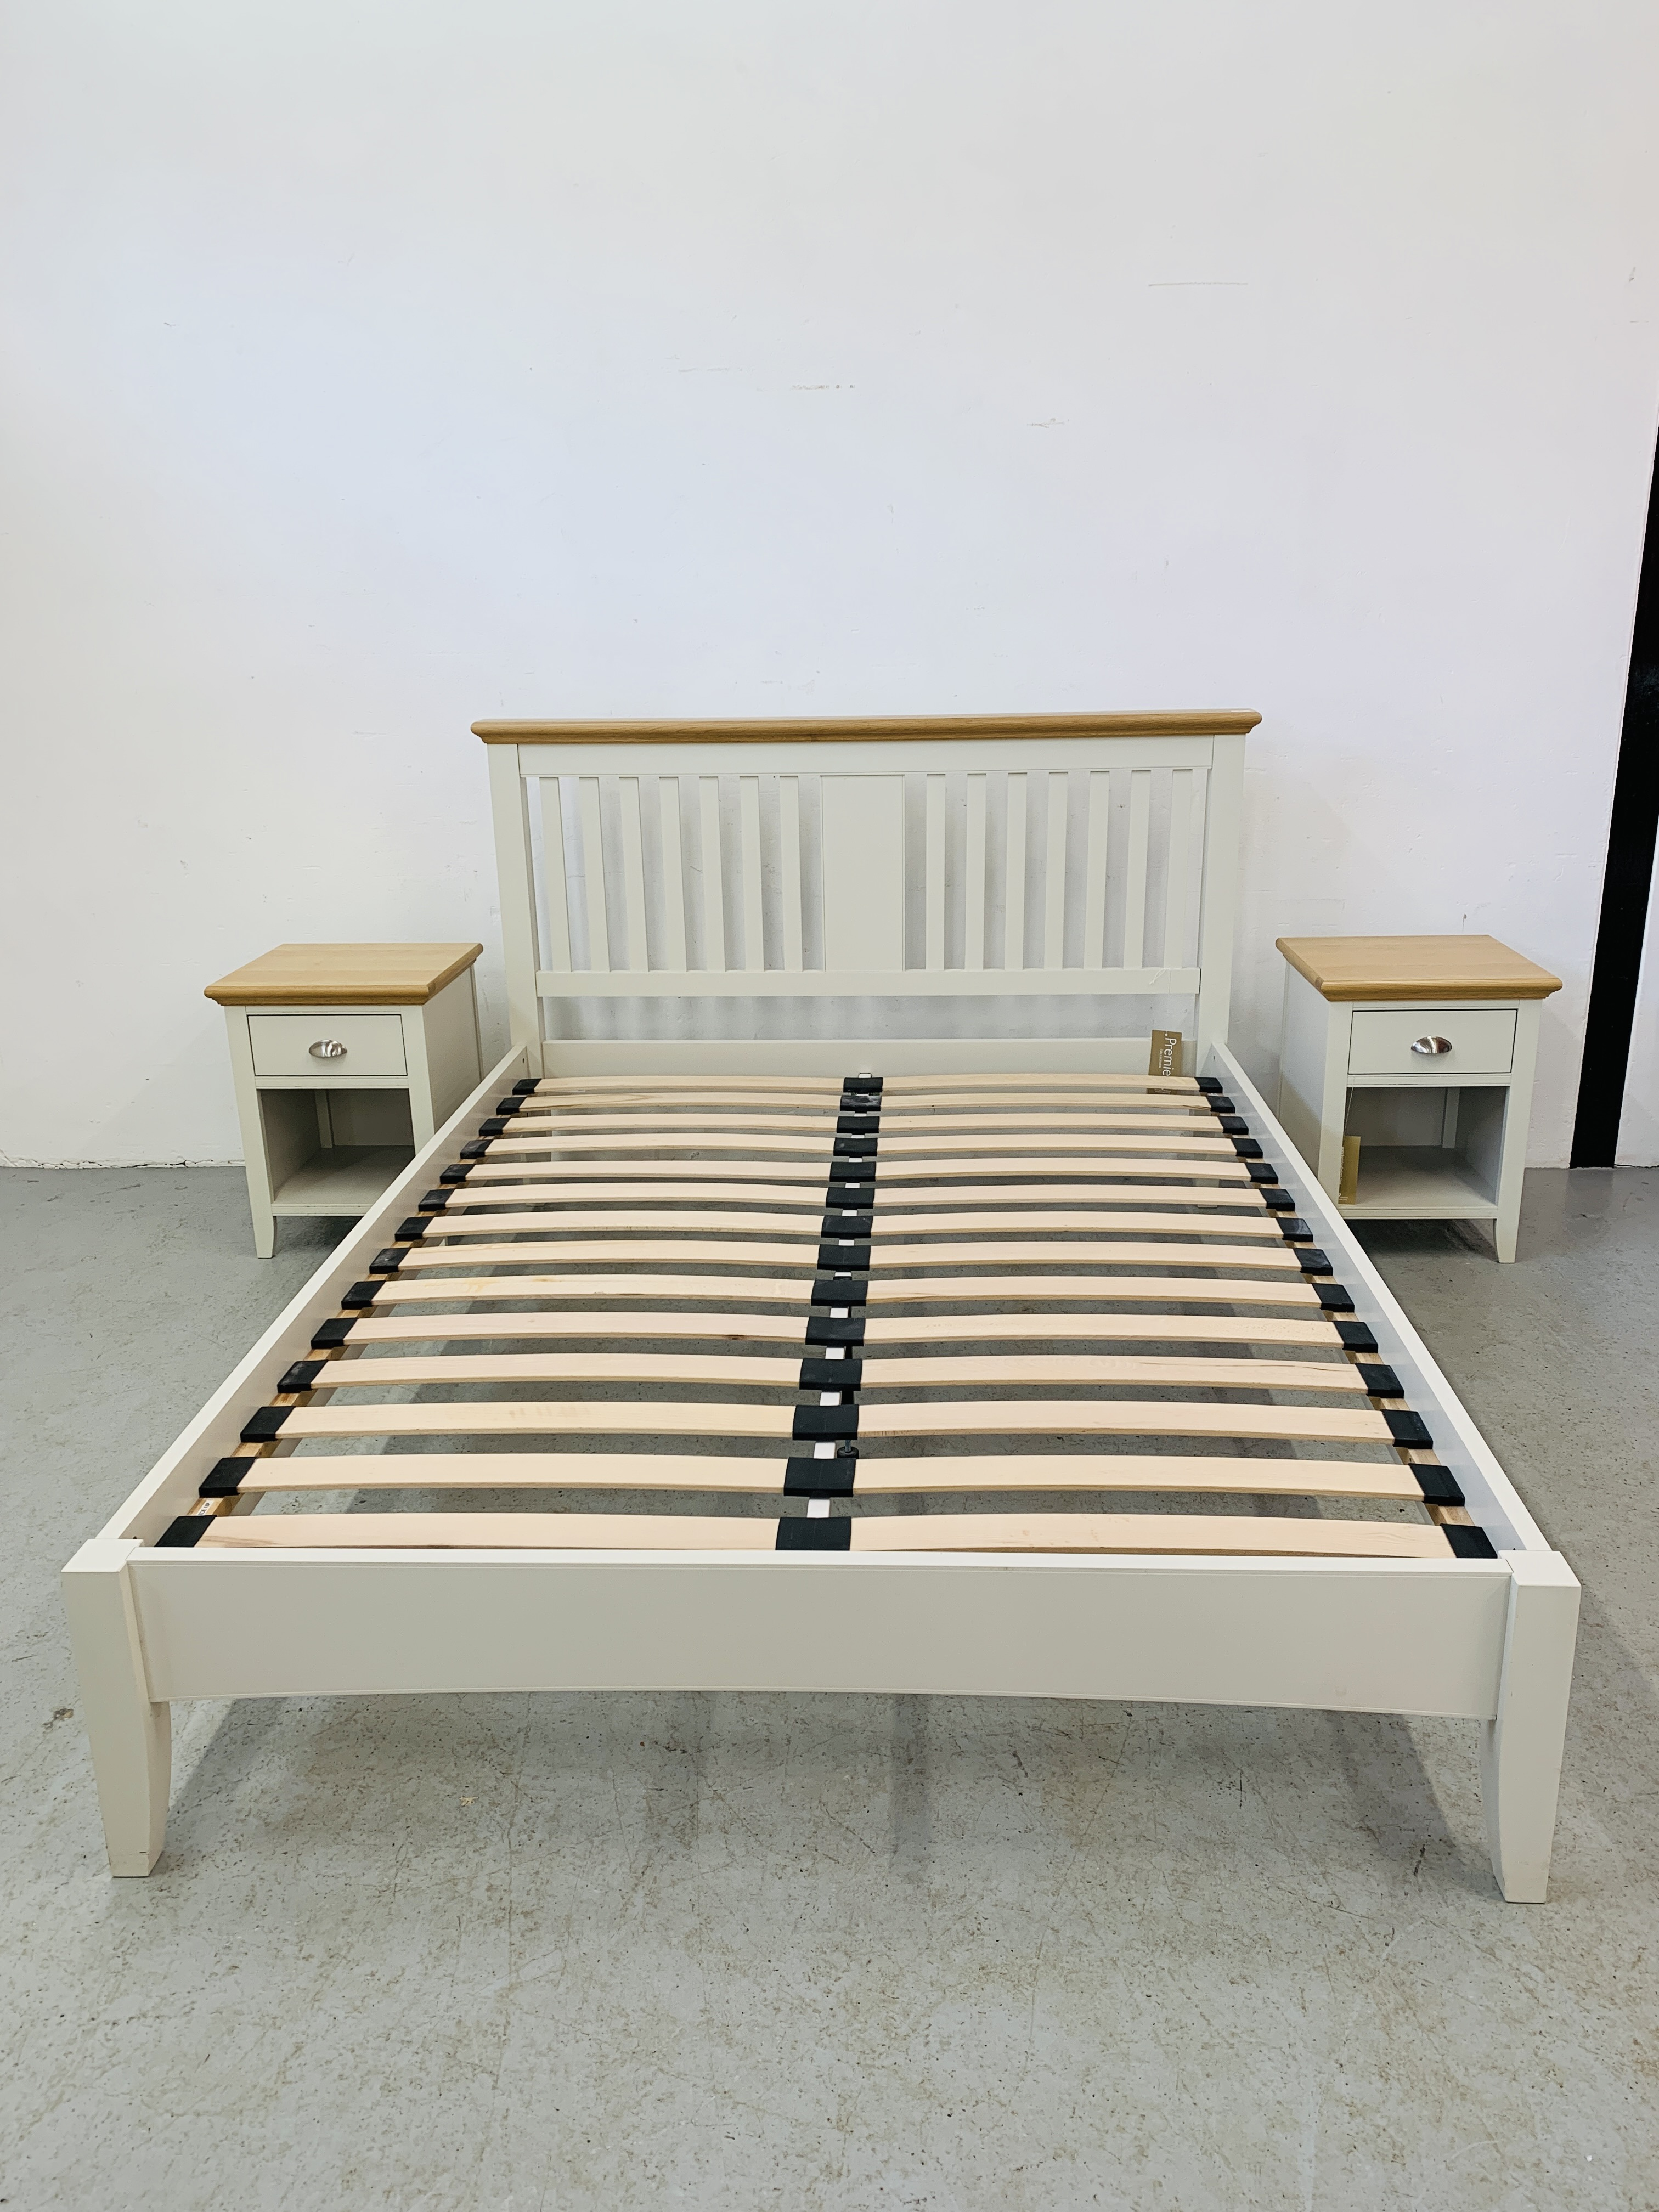 A PREMIER COLLECTION DESIGNER KING SIZE BEDSTEAD WITH MATCHING PAIR OF SINGLE DRAWER BEDSIDE STANDS